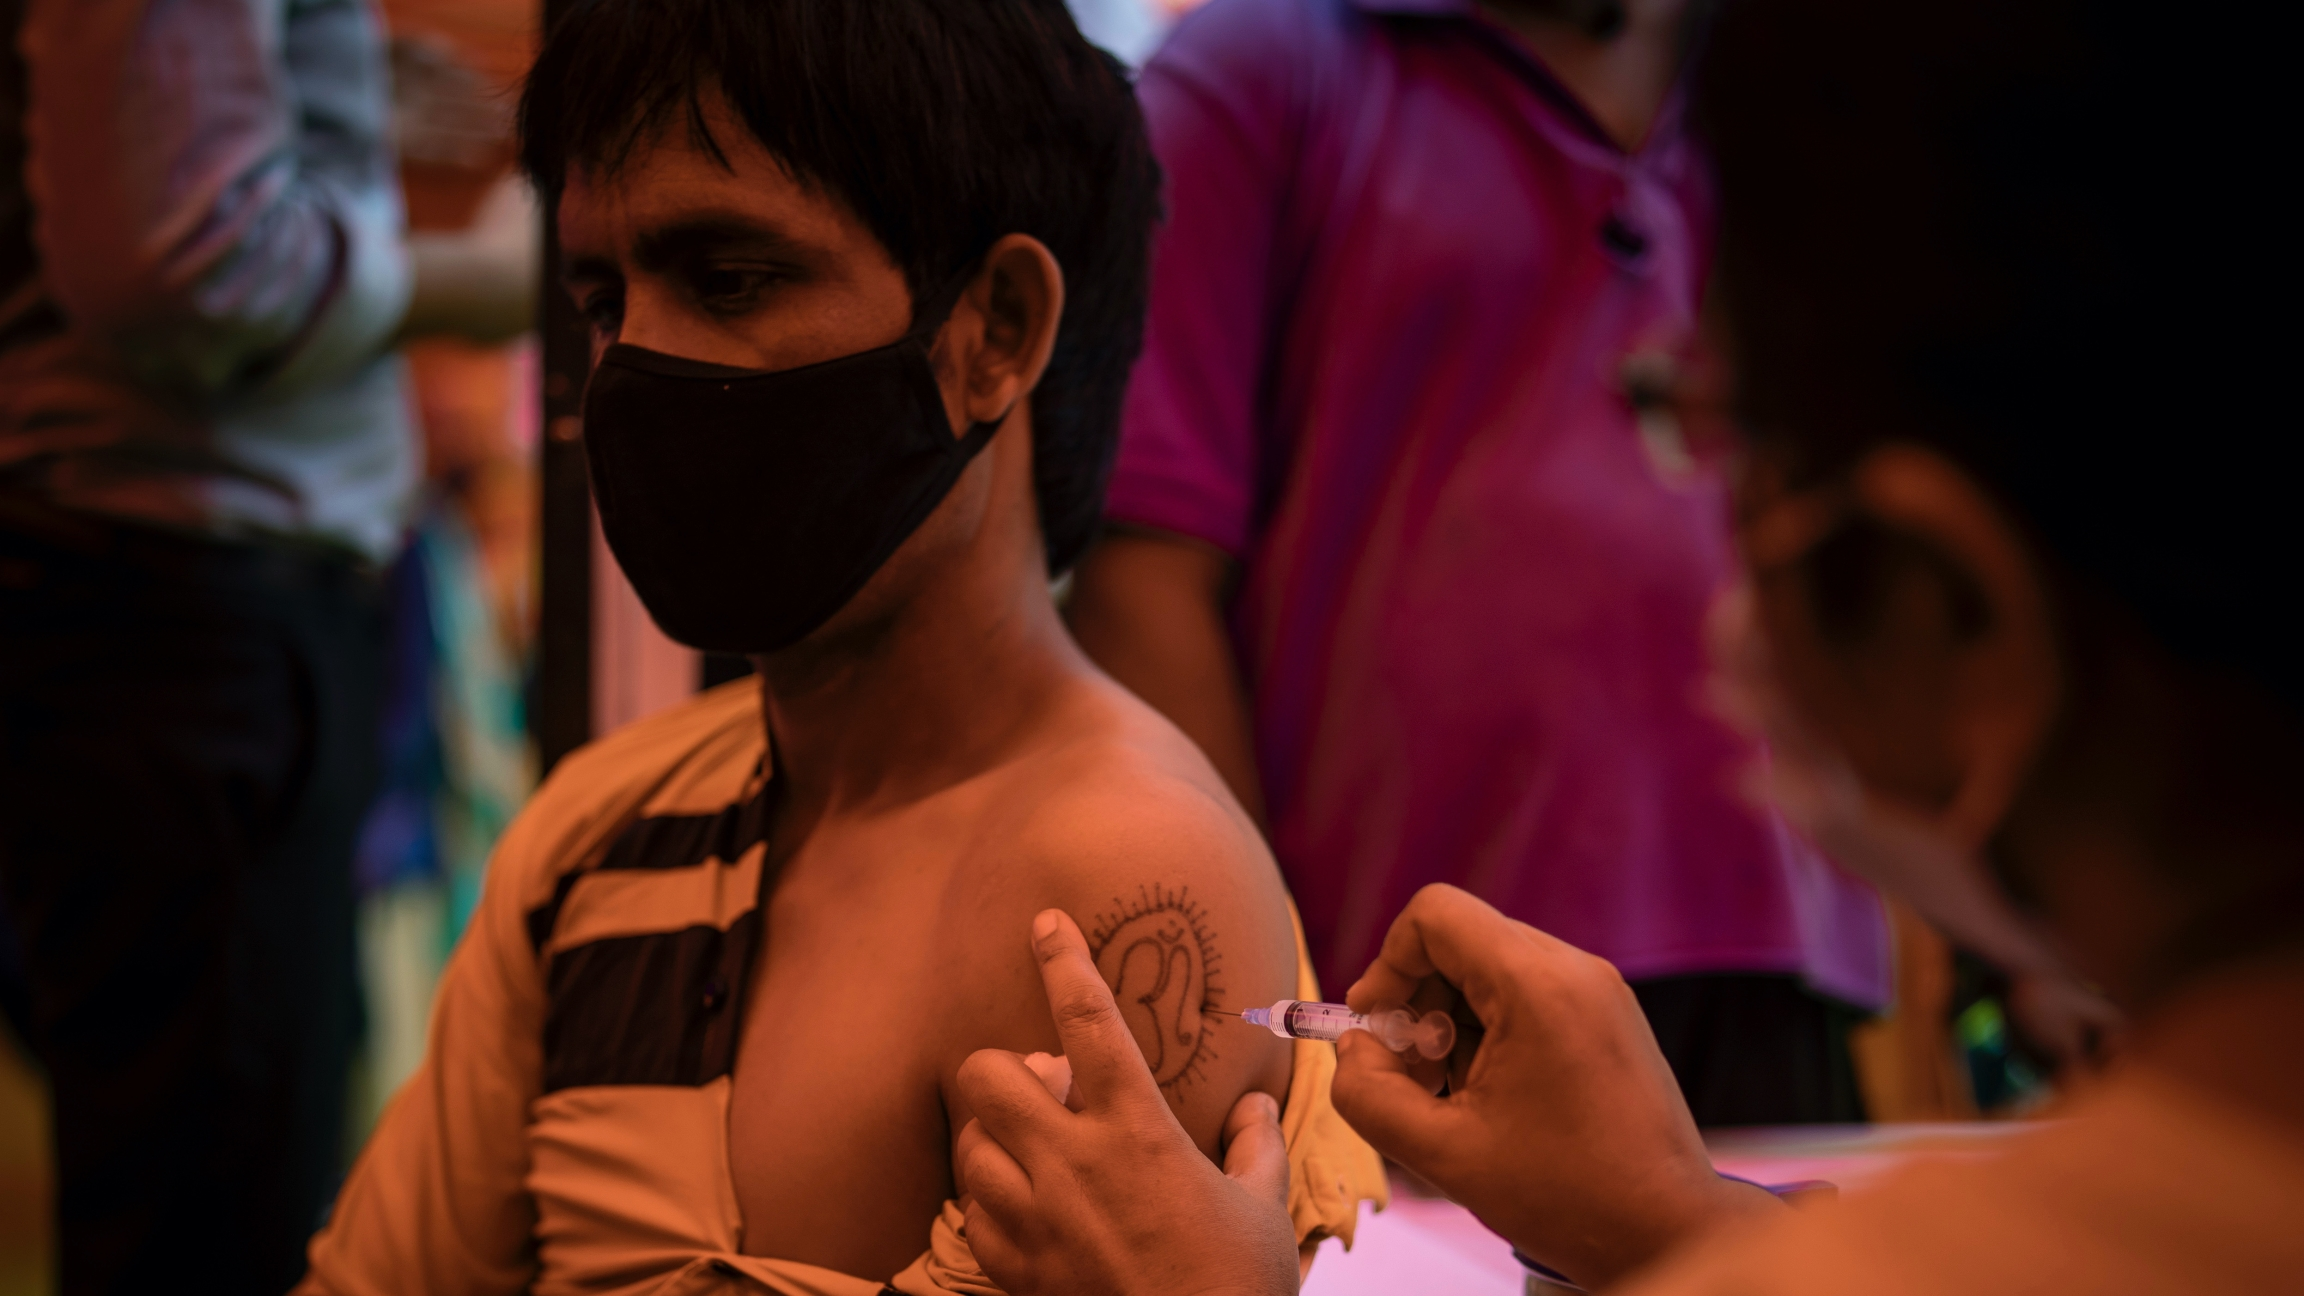 A health worker inoculates a man during a vaccination drive against COVID-19 in Delhi, India, Sept. 29, 2021. India will soon roll out the world's firstDNA vaccine.